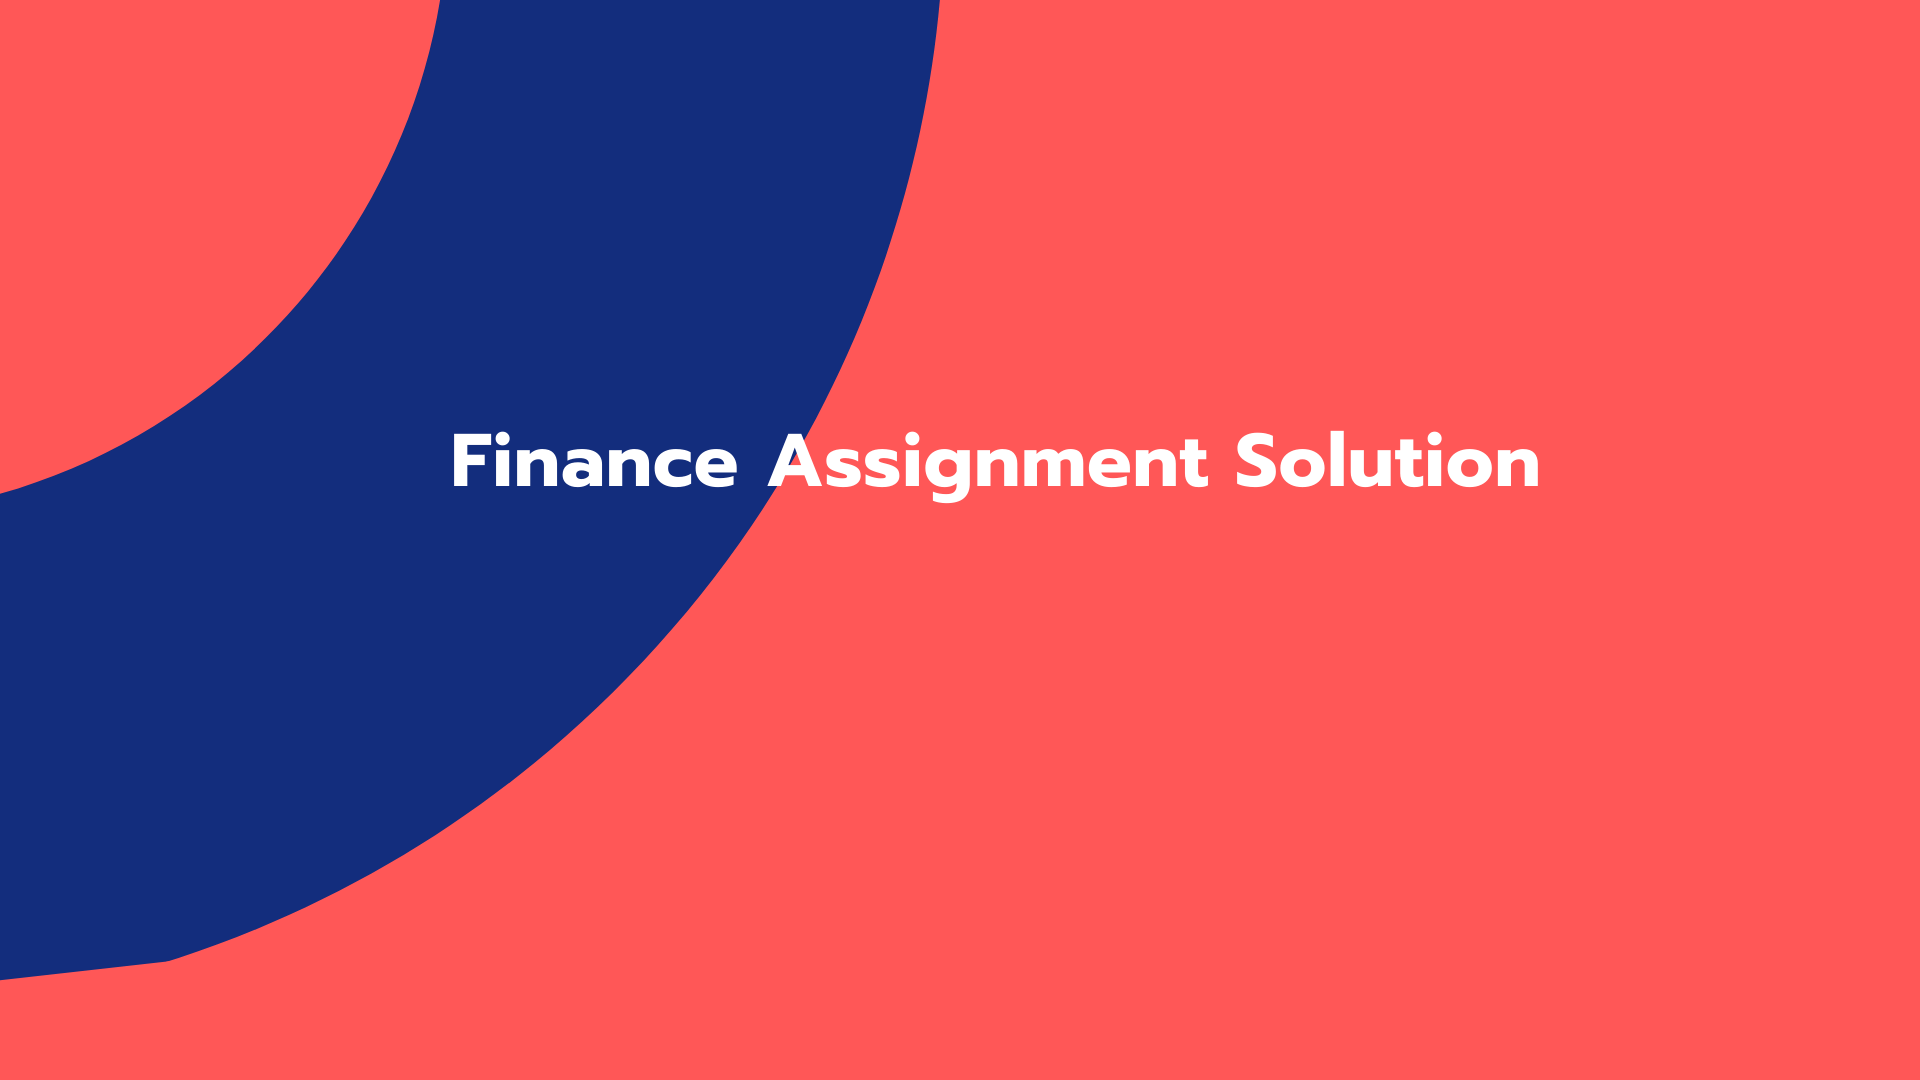 Finance Assignment Solution_ Words 3088